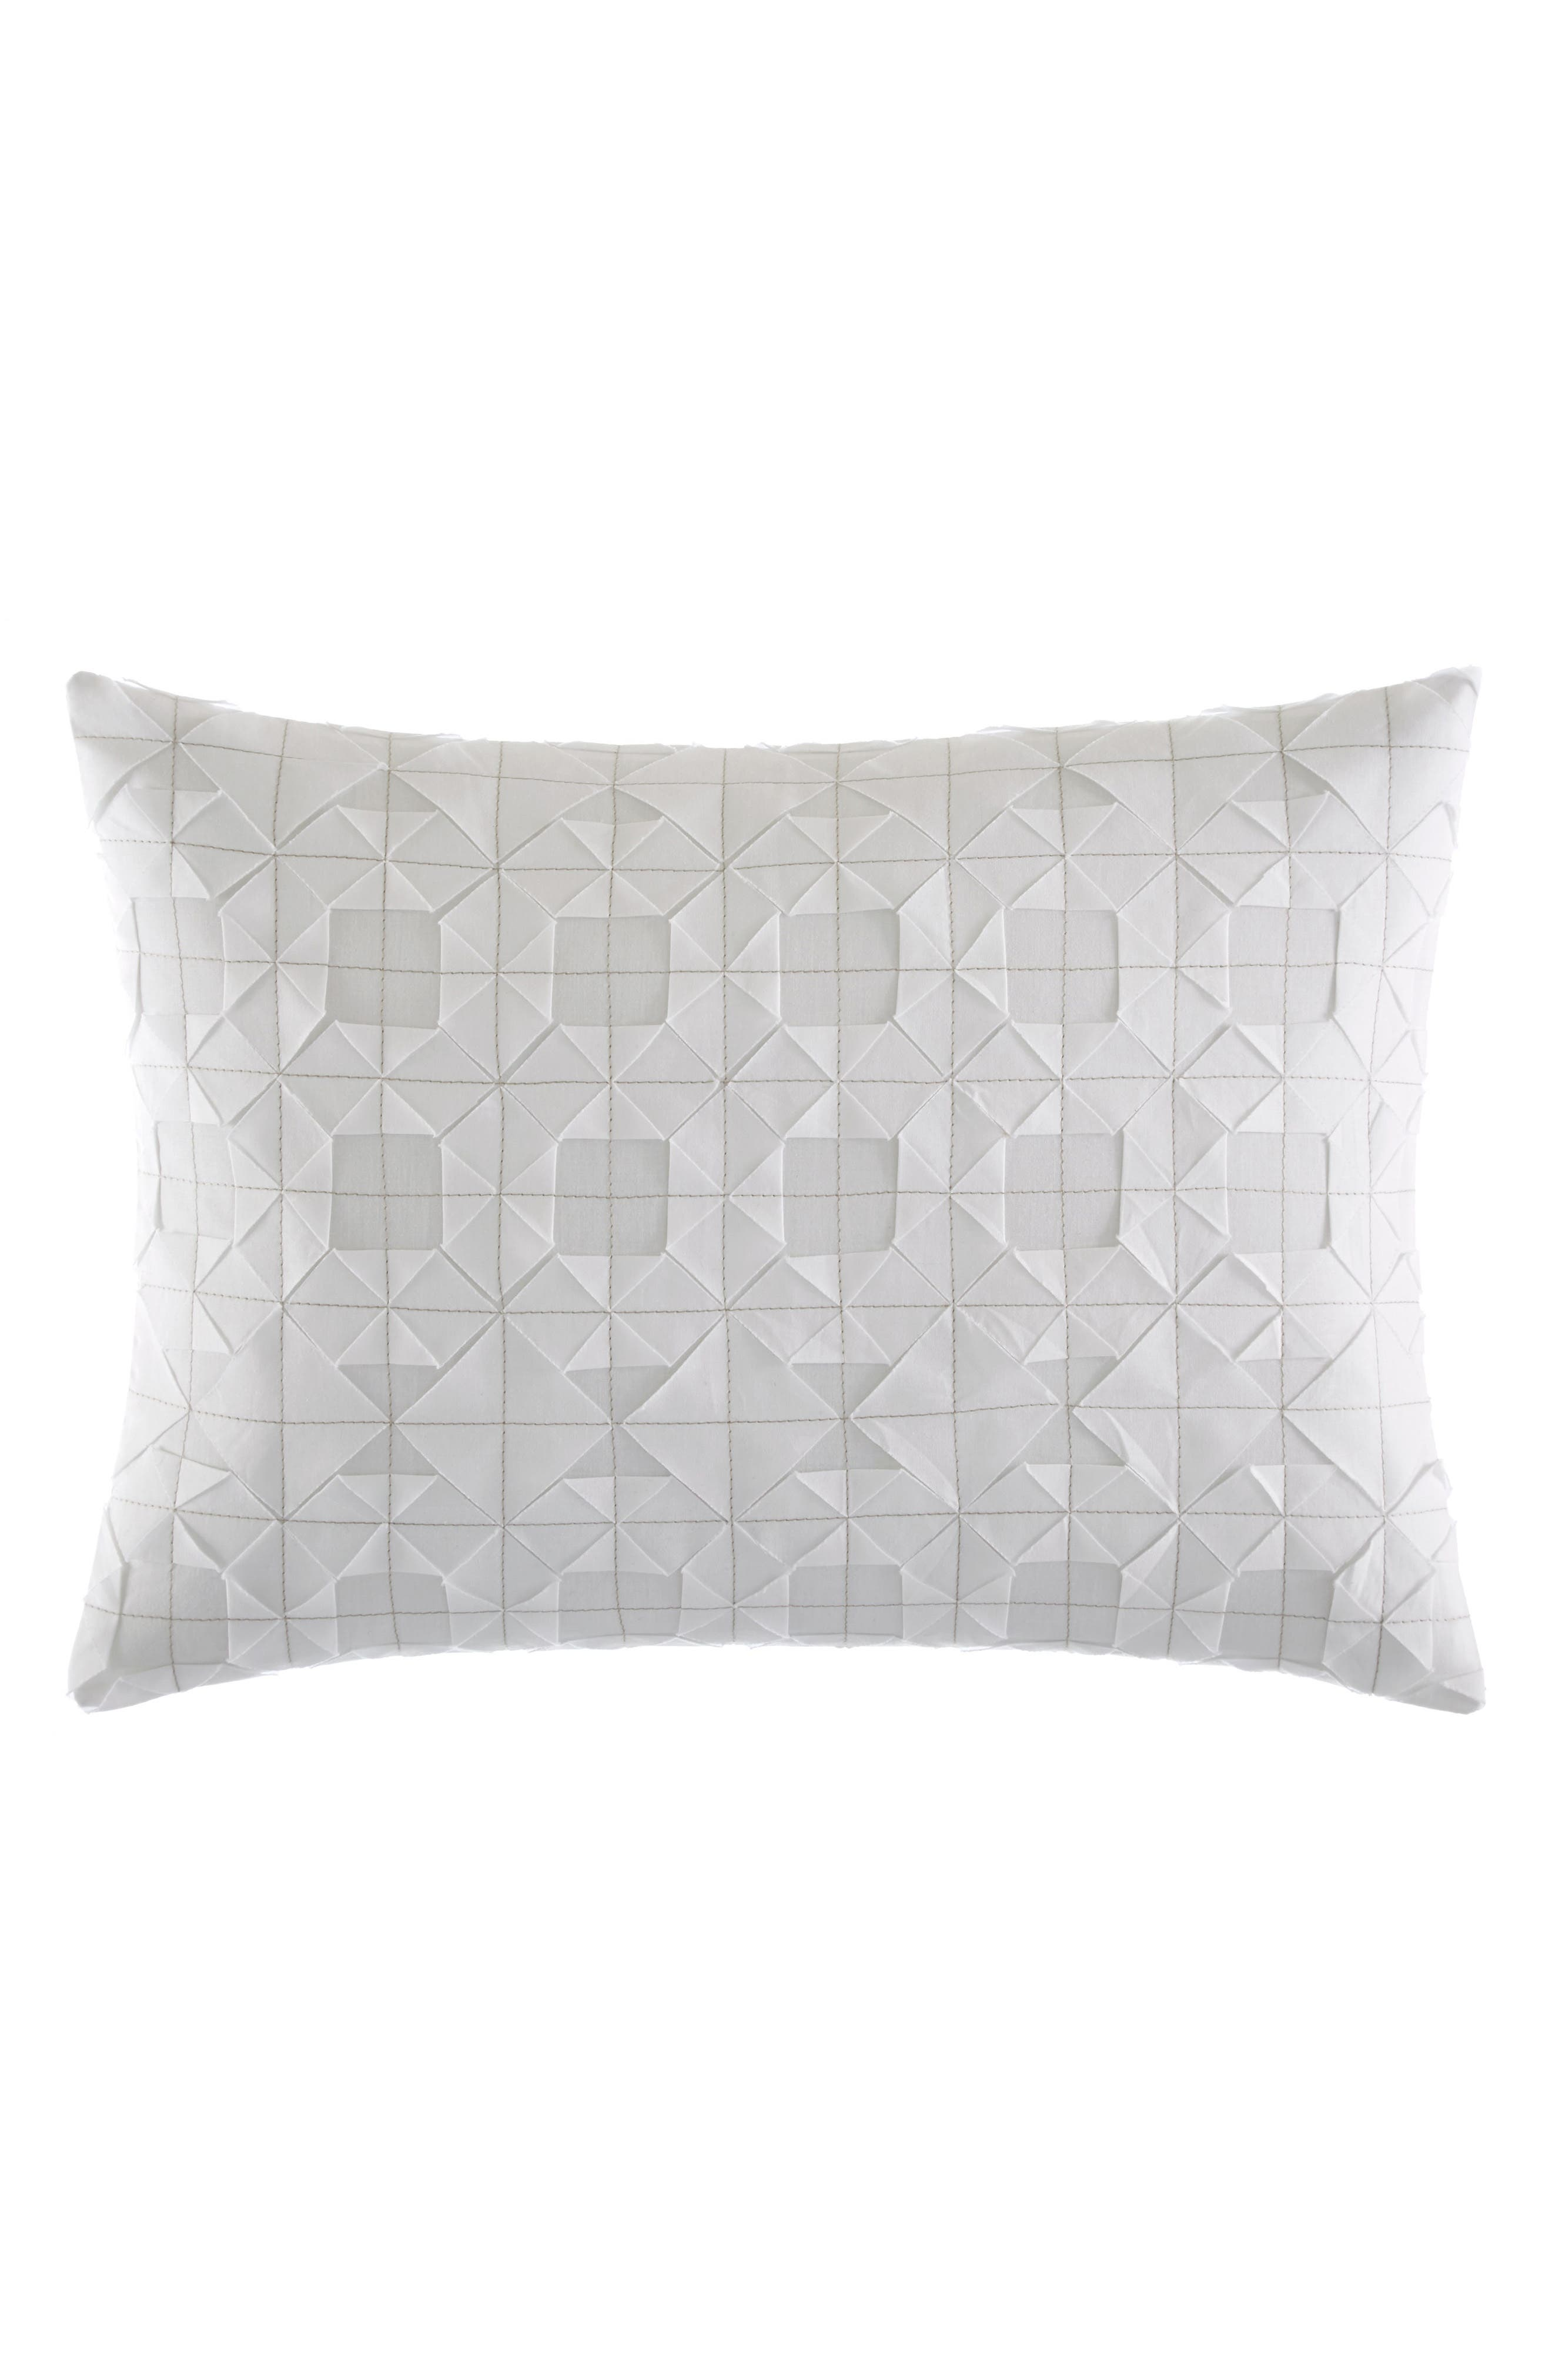 Main Image - Vera Wang Tuille Origami Stitched Accent Pillow